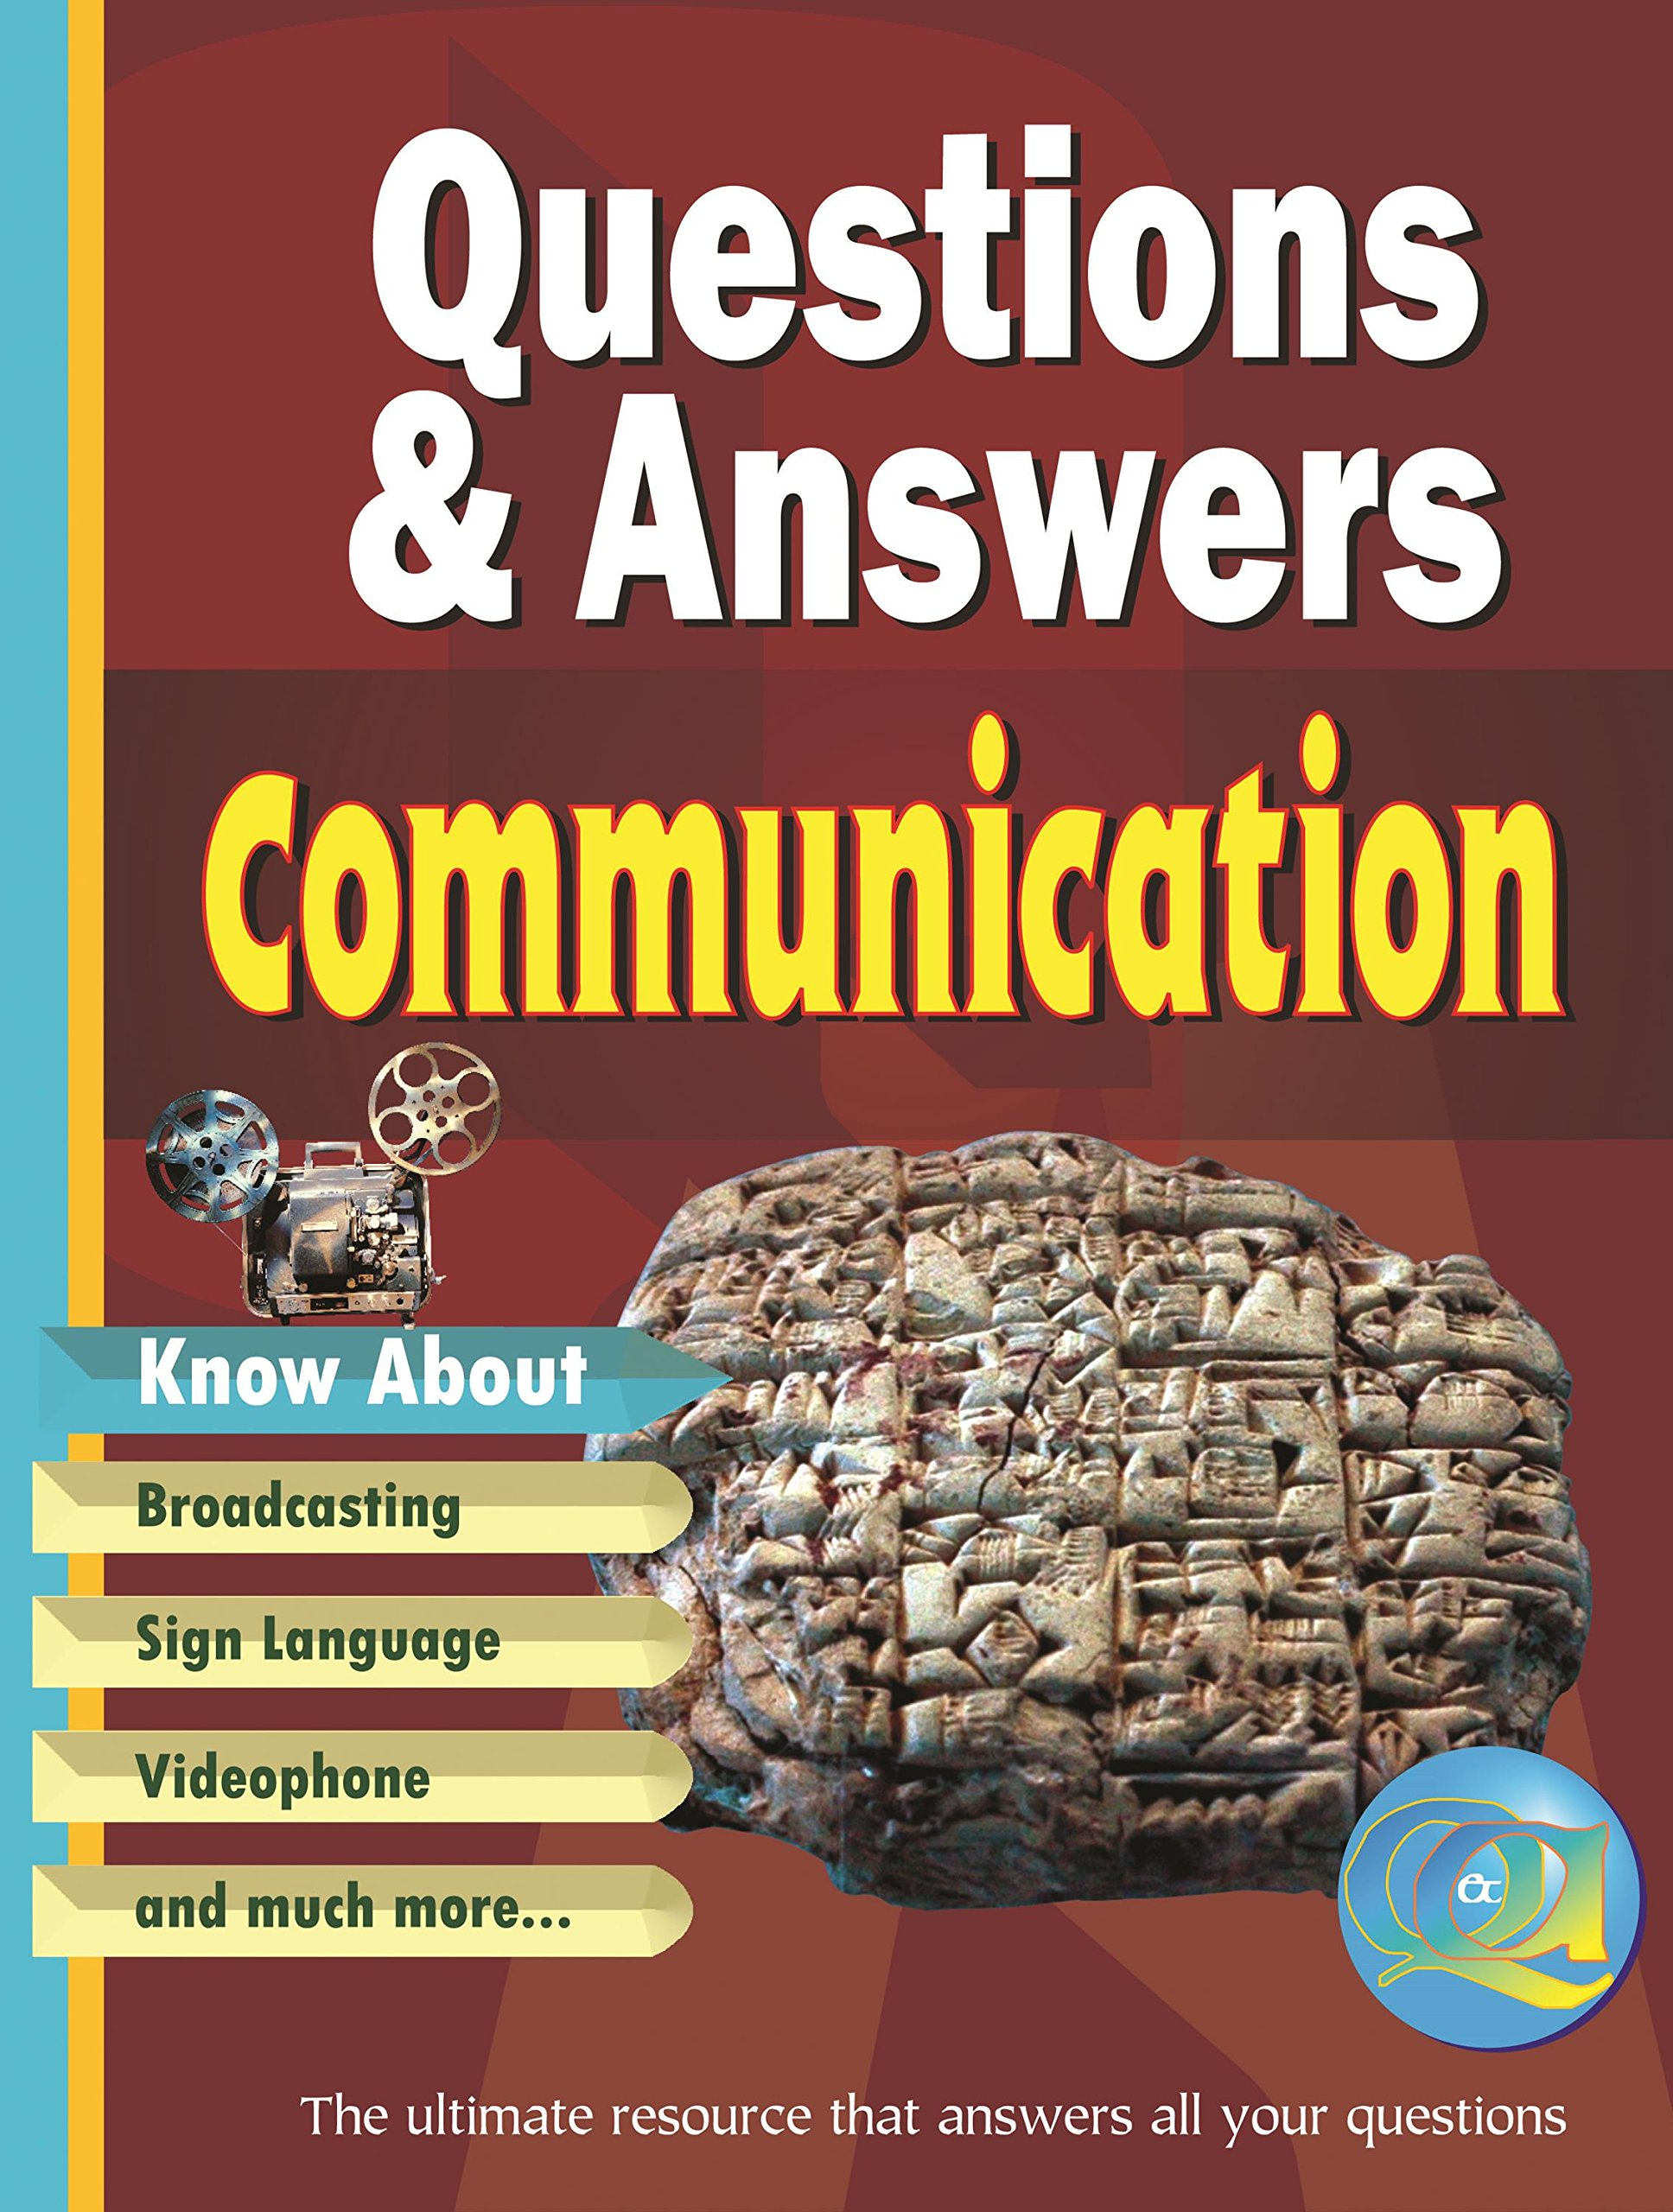 Questions And Answers - Communication: BPI India